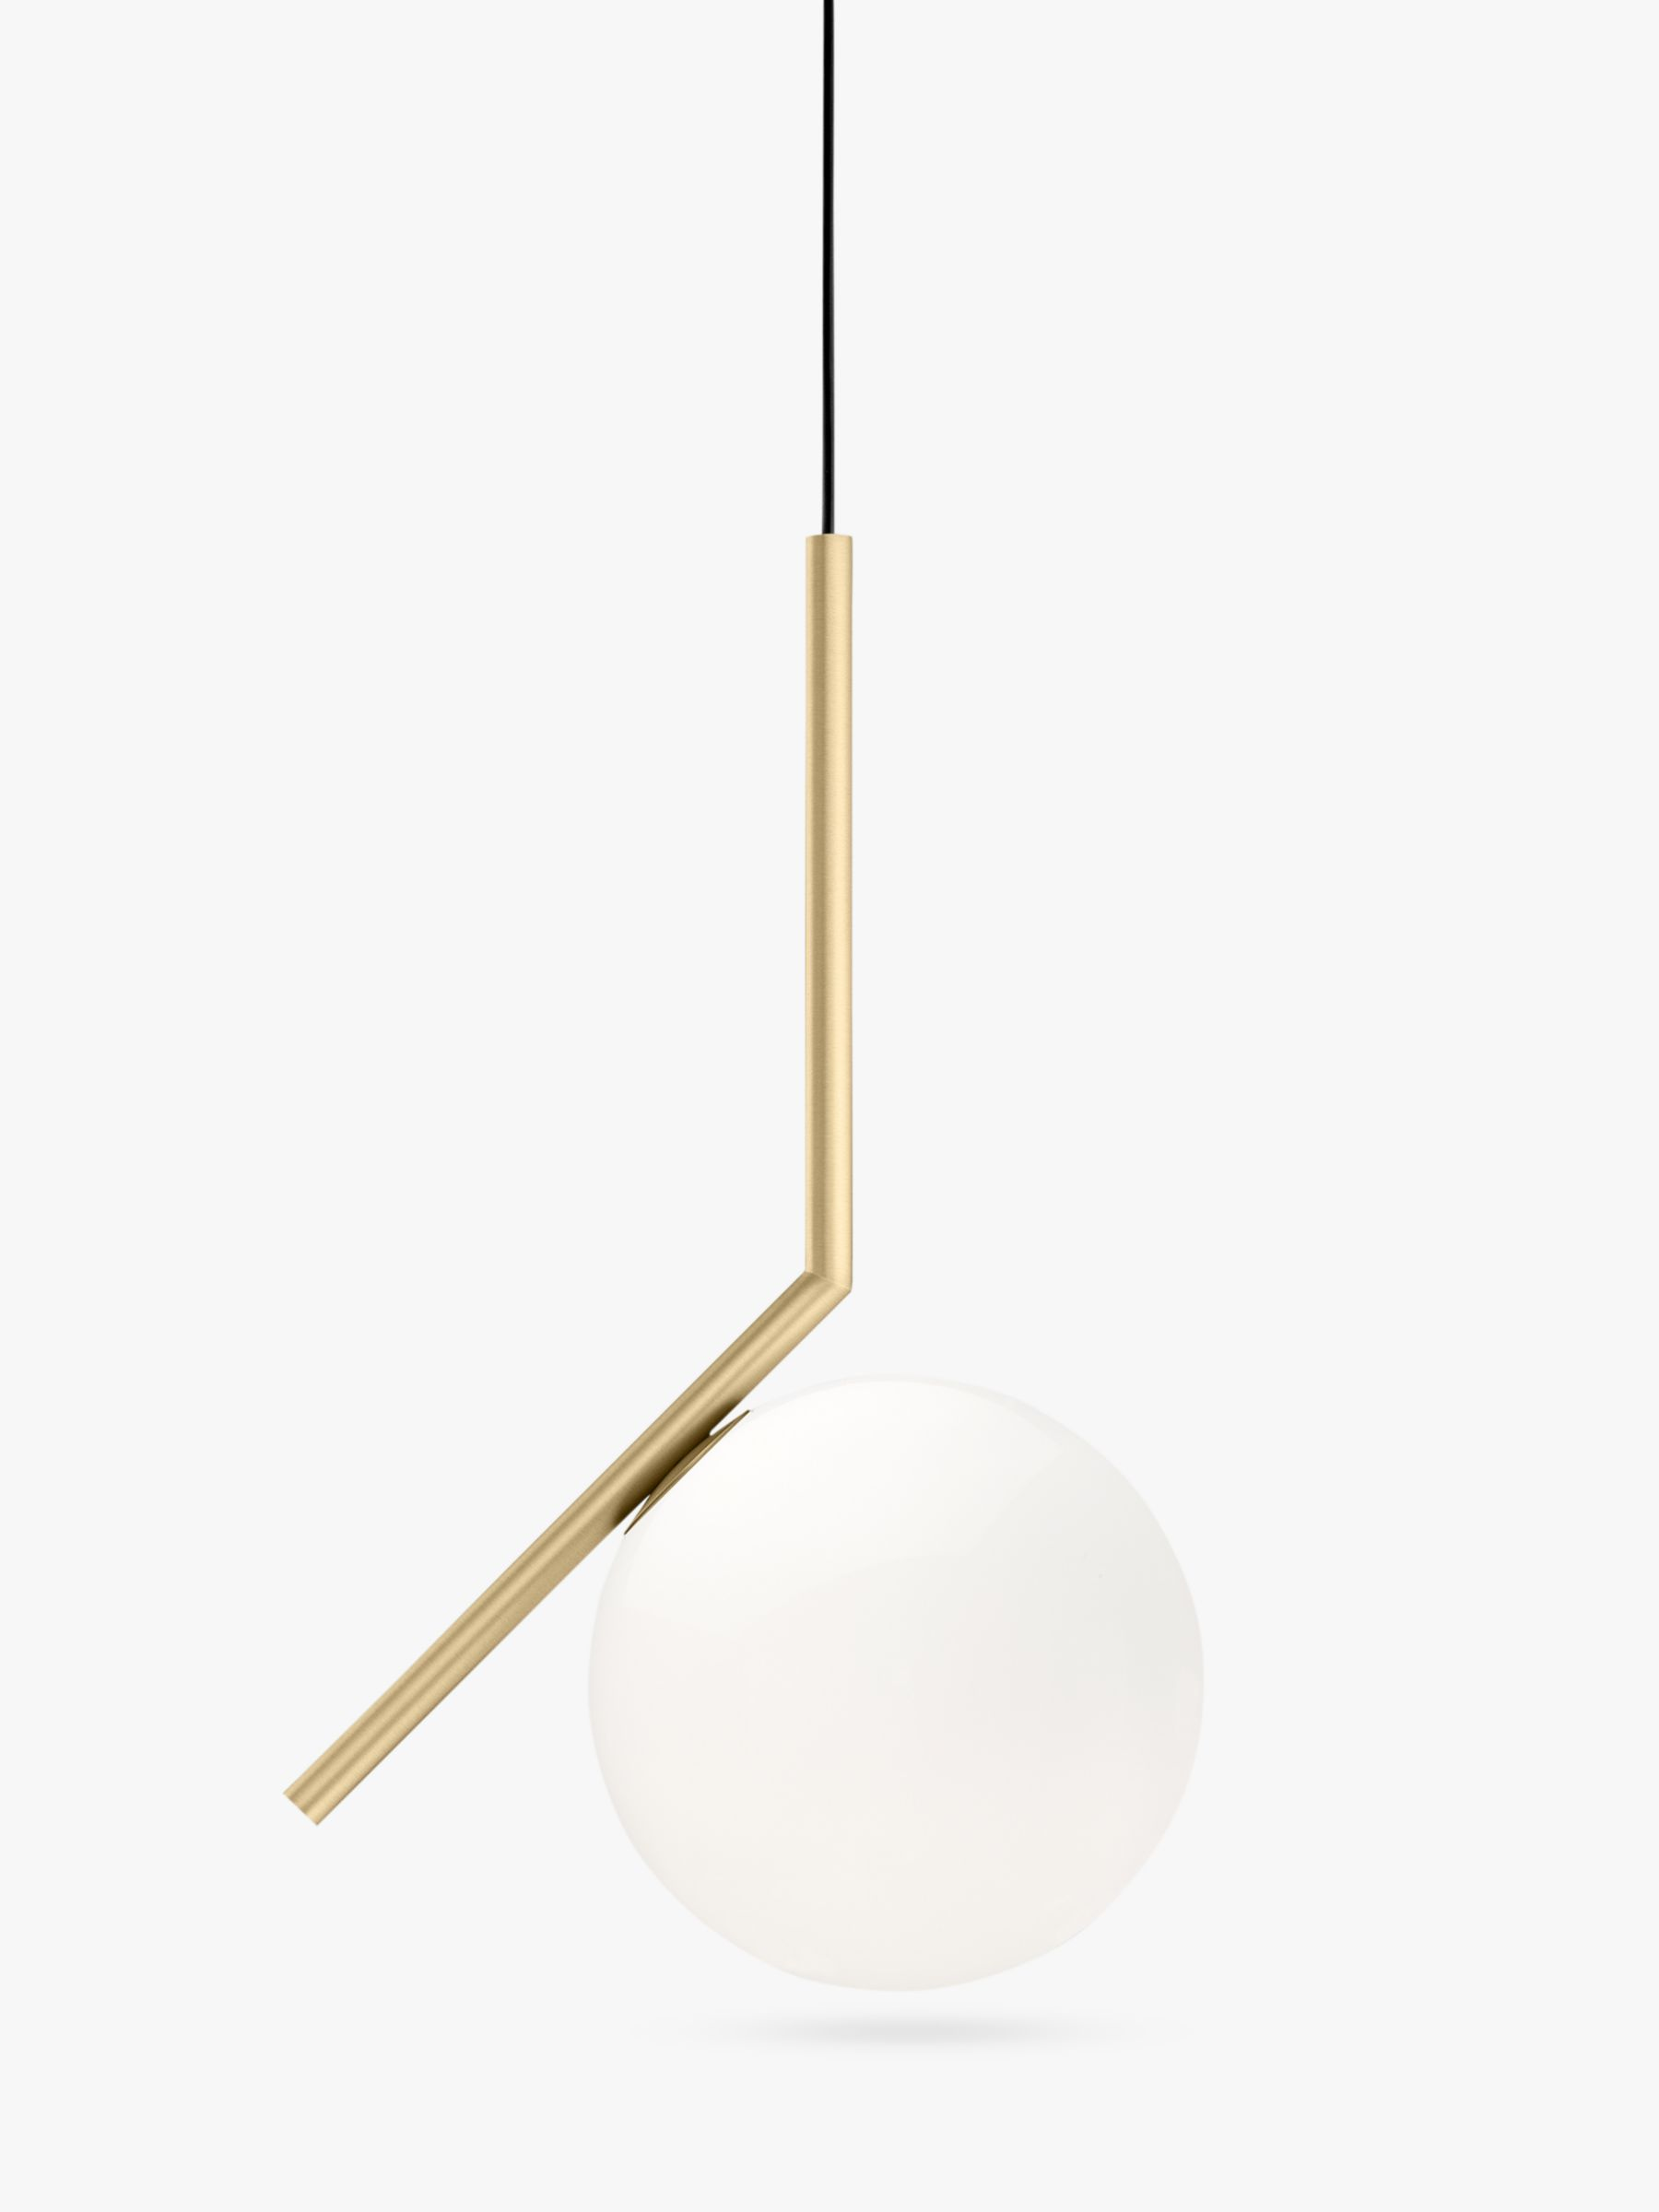 Flos Ic Lights 200 Wall Light Brushed Brass : Buy Flos IC S1 Ceiling Light, 20cm, Brushed Brass John Lewis